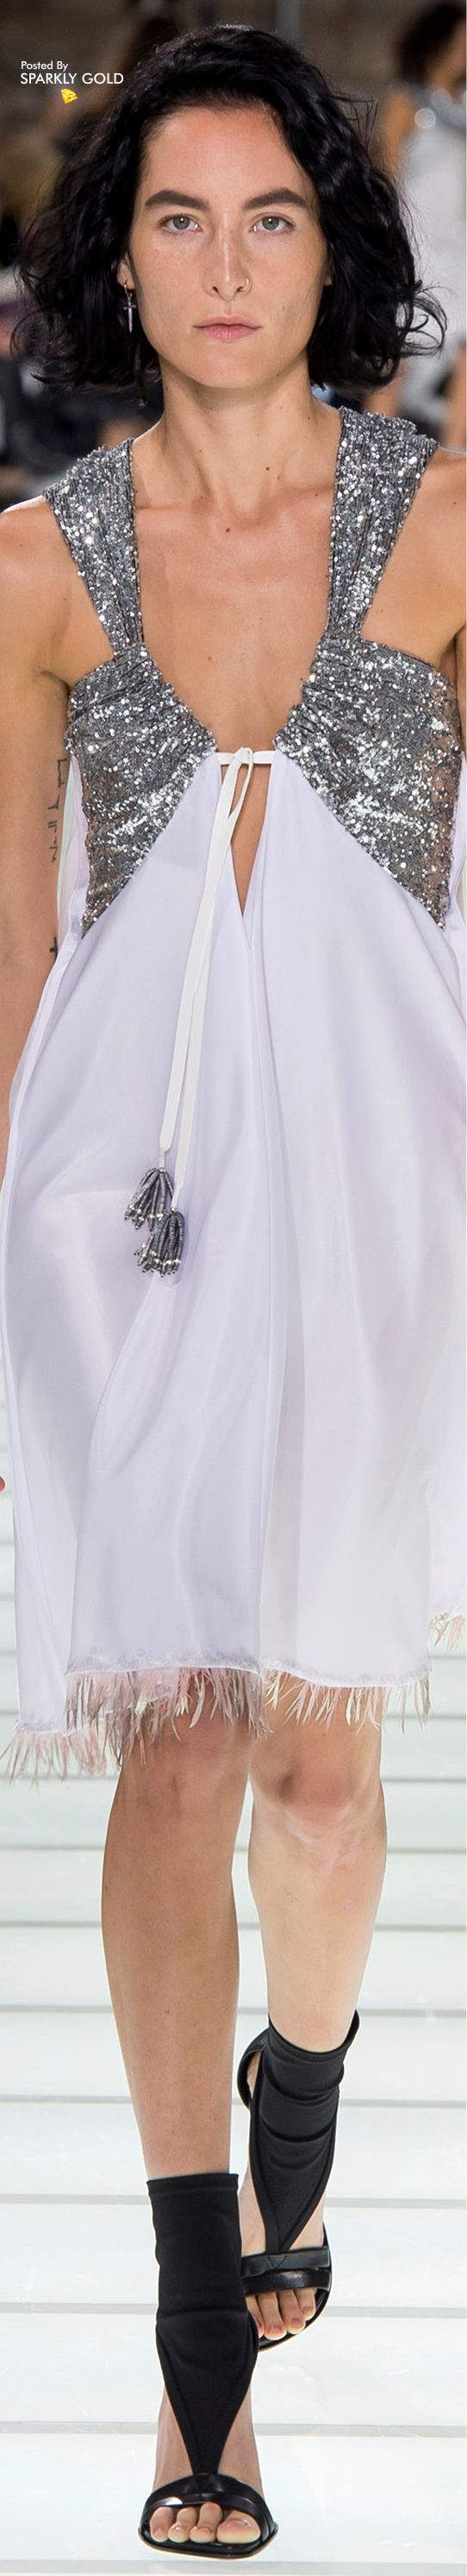 best all things white and silver images on pinterest couture